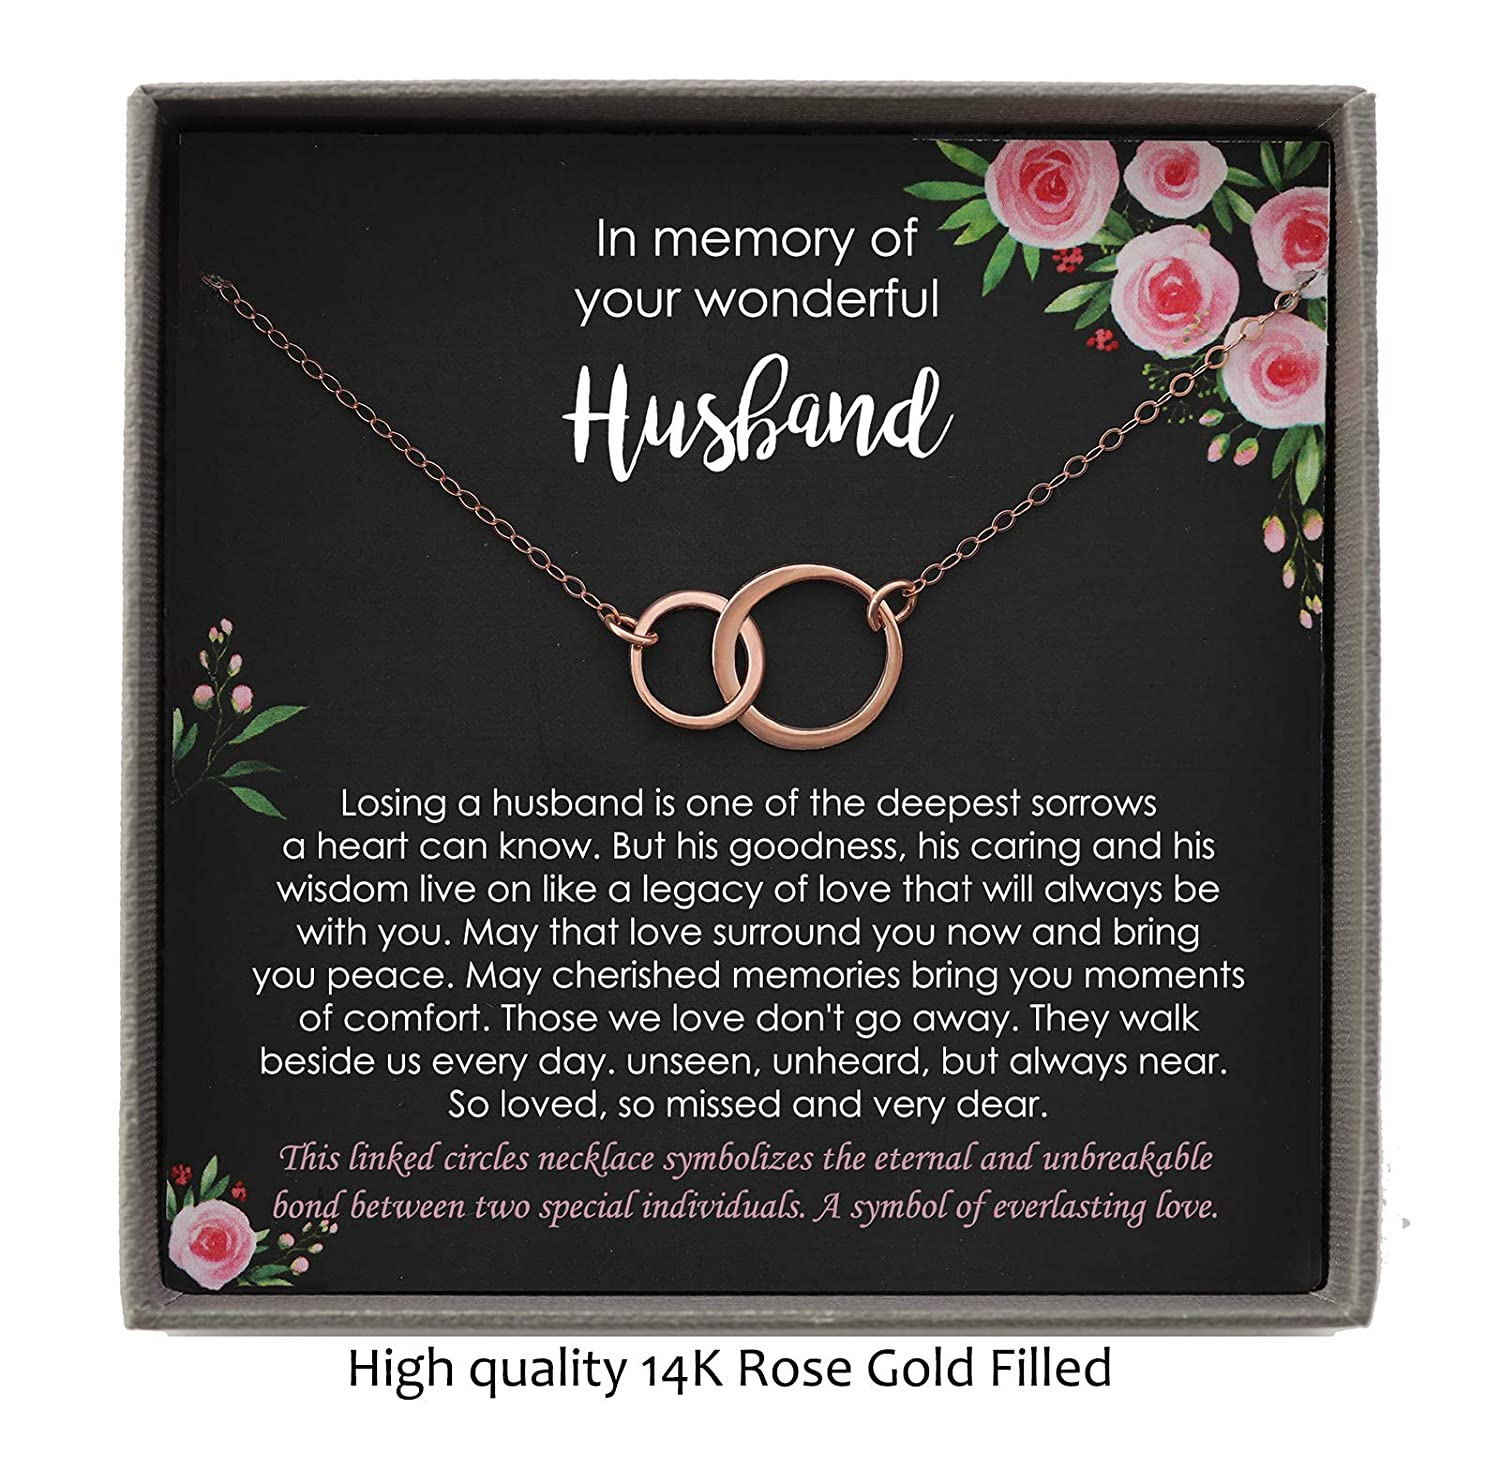 Loss of Husband Sympathy Gift 2 Interlocking Circles Necklace with Meaningful Message Bereavement Gifts for Loss of Husband